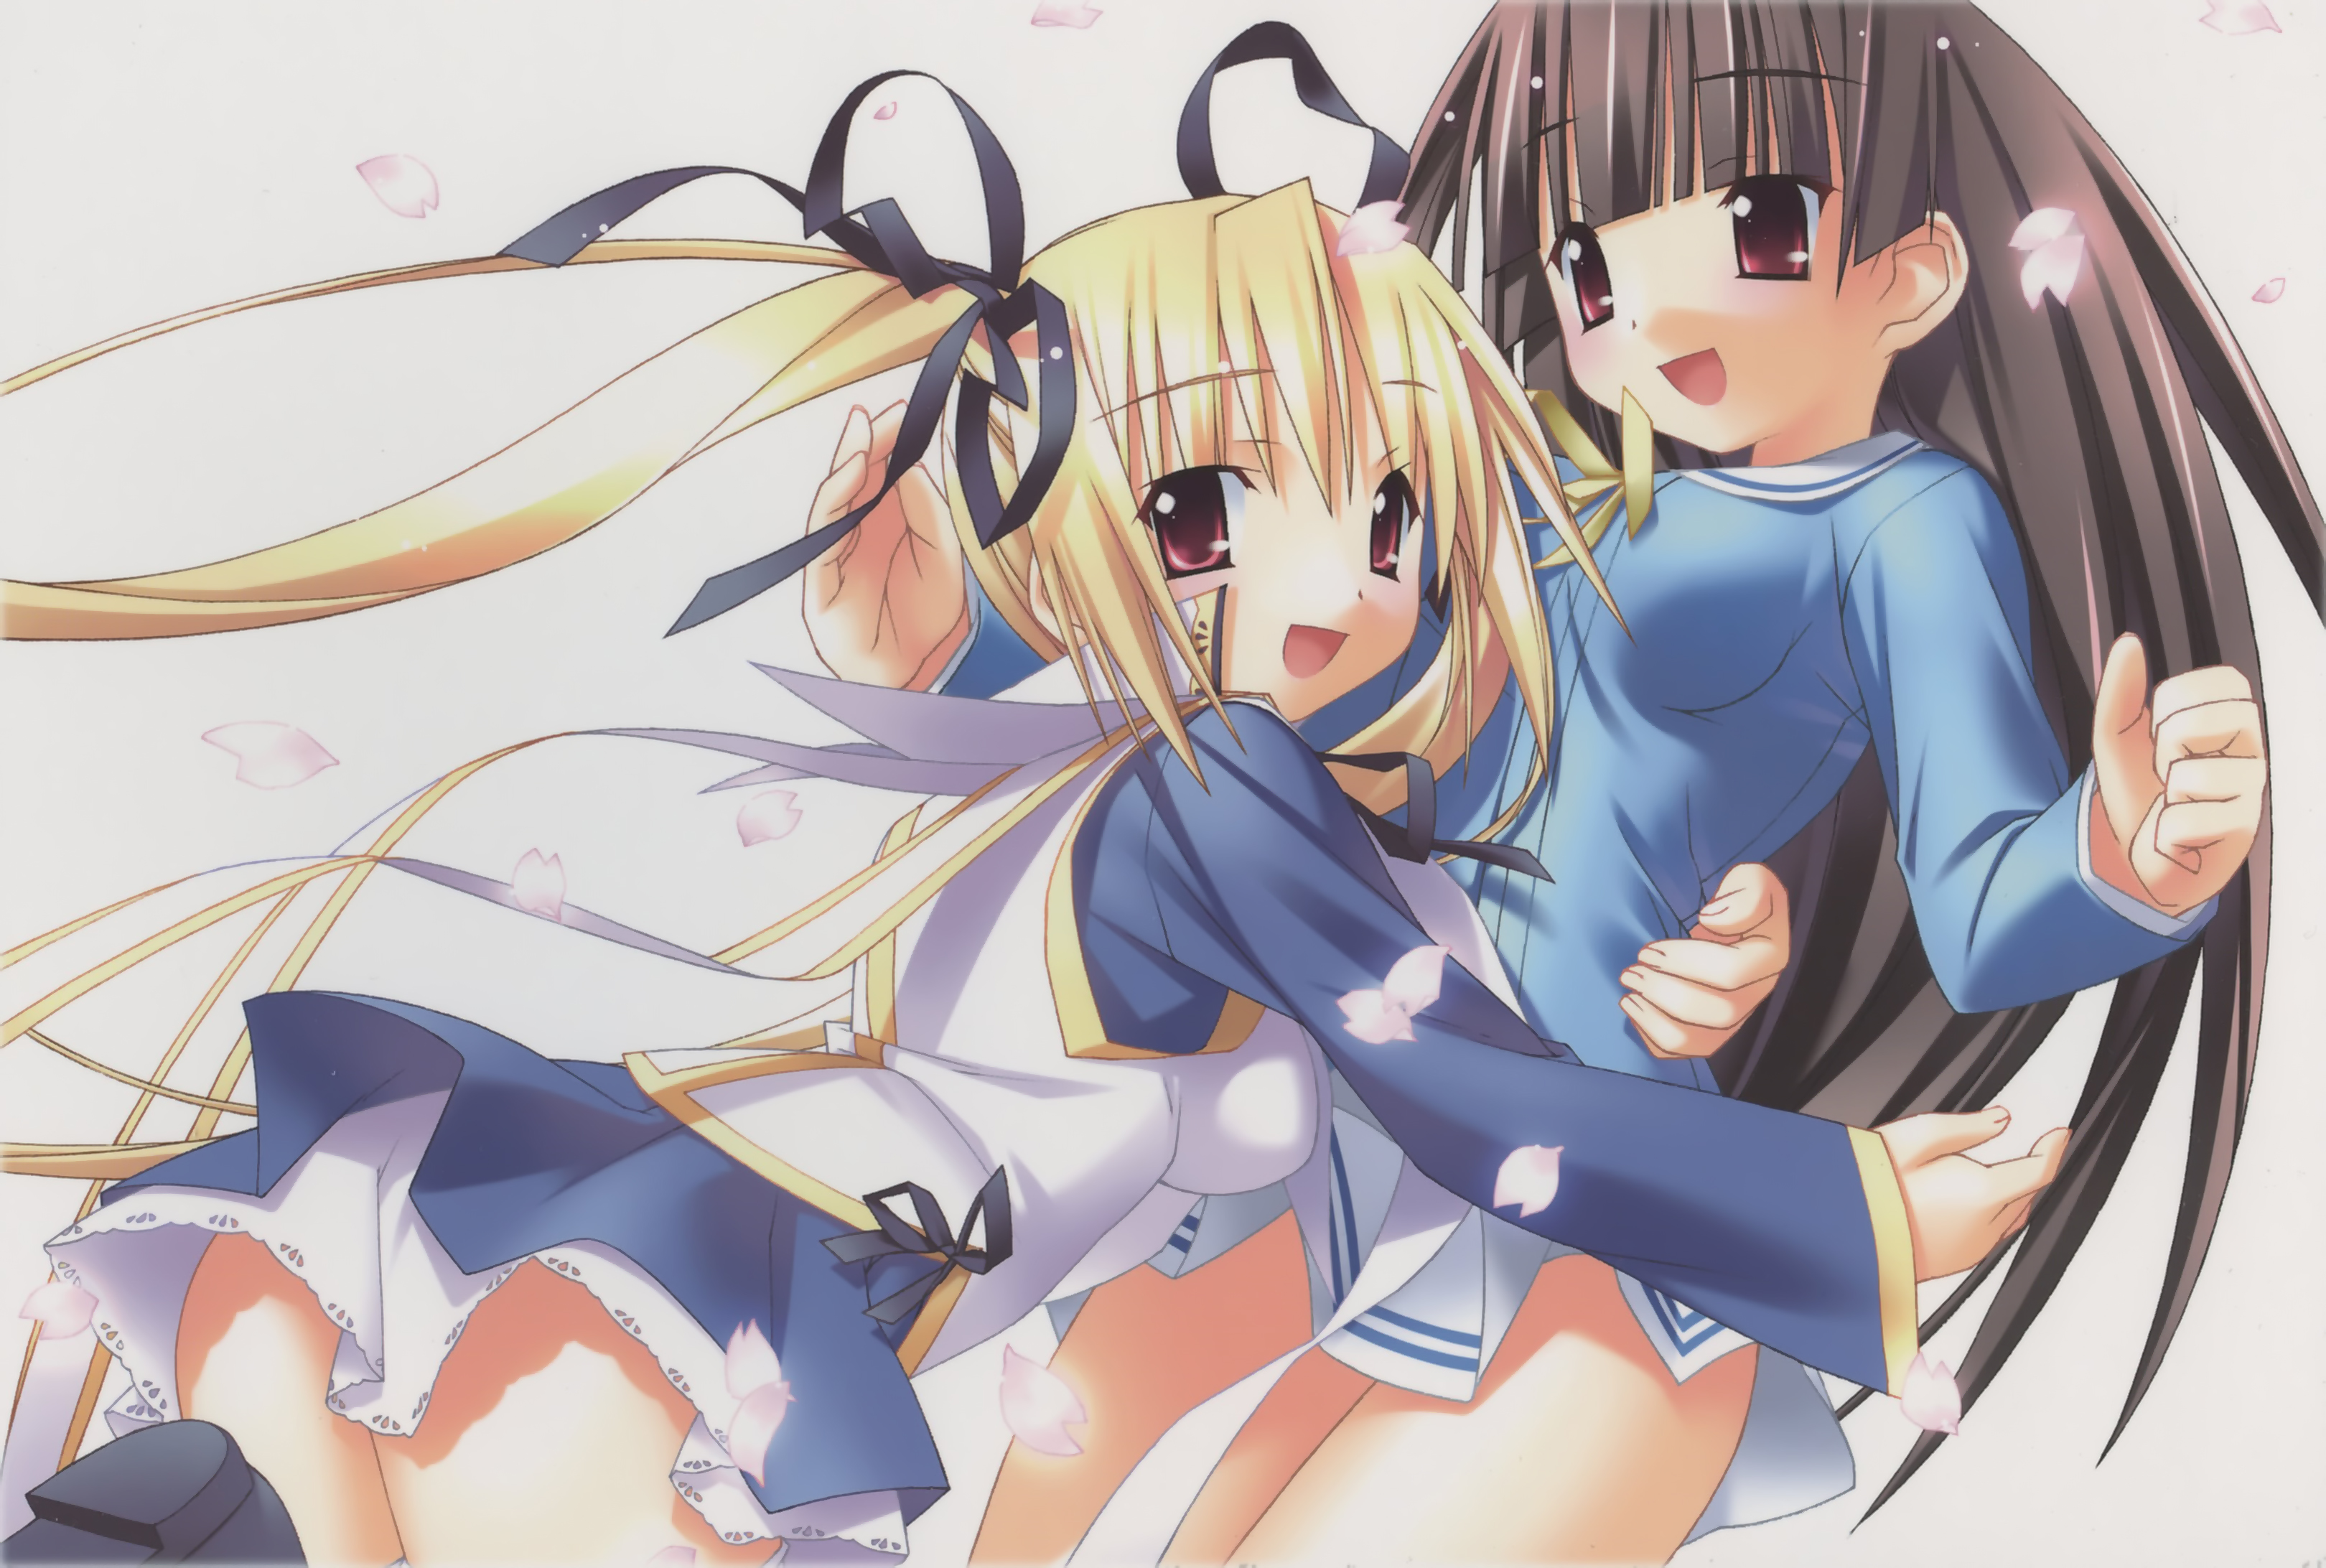 2girls Iinchou (princess Witches) Klucienne Roussel Petals Princess Witches Red Eyes Seifuku Twintails White2719